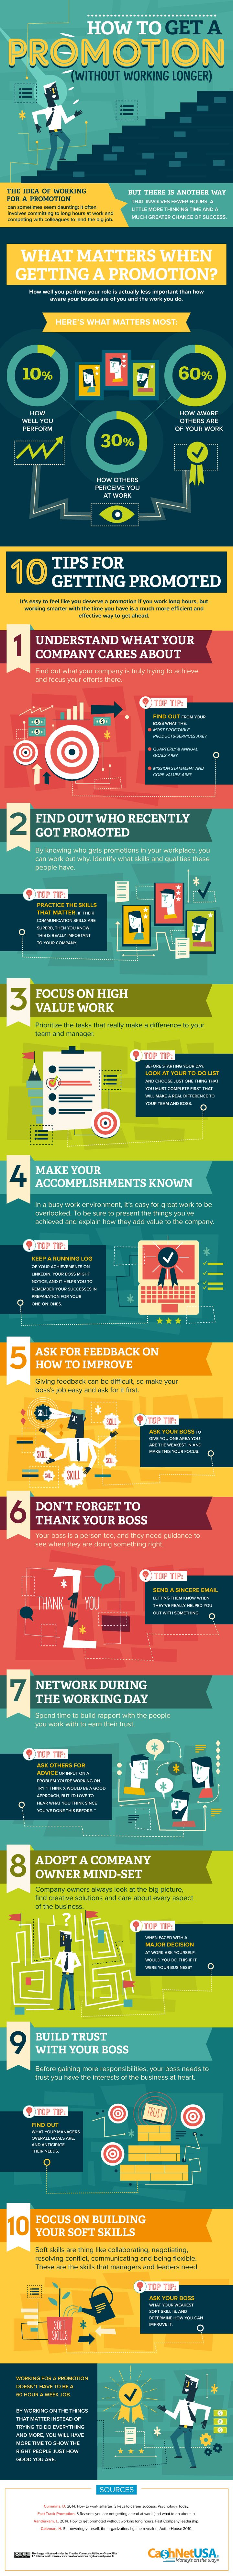 How to Get a Promotion (Without Working Longer) #Infographic #Promotion #HowTo